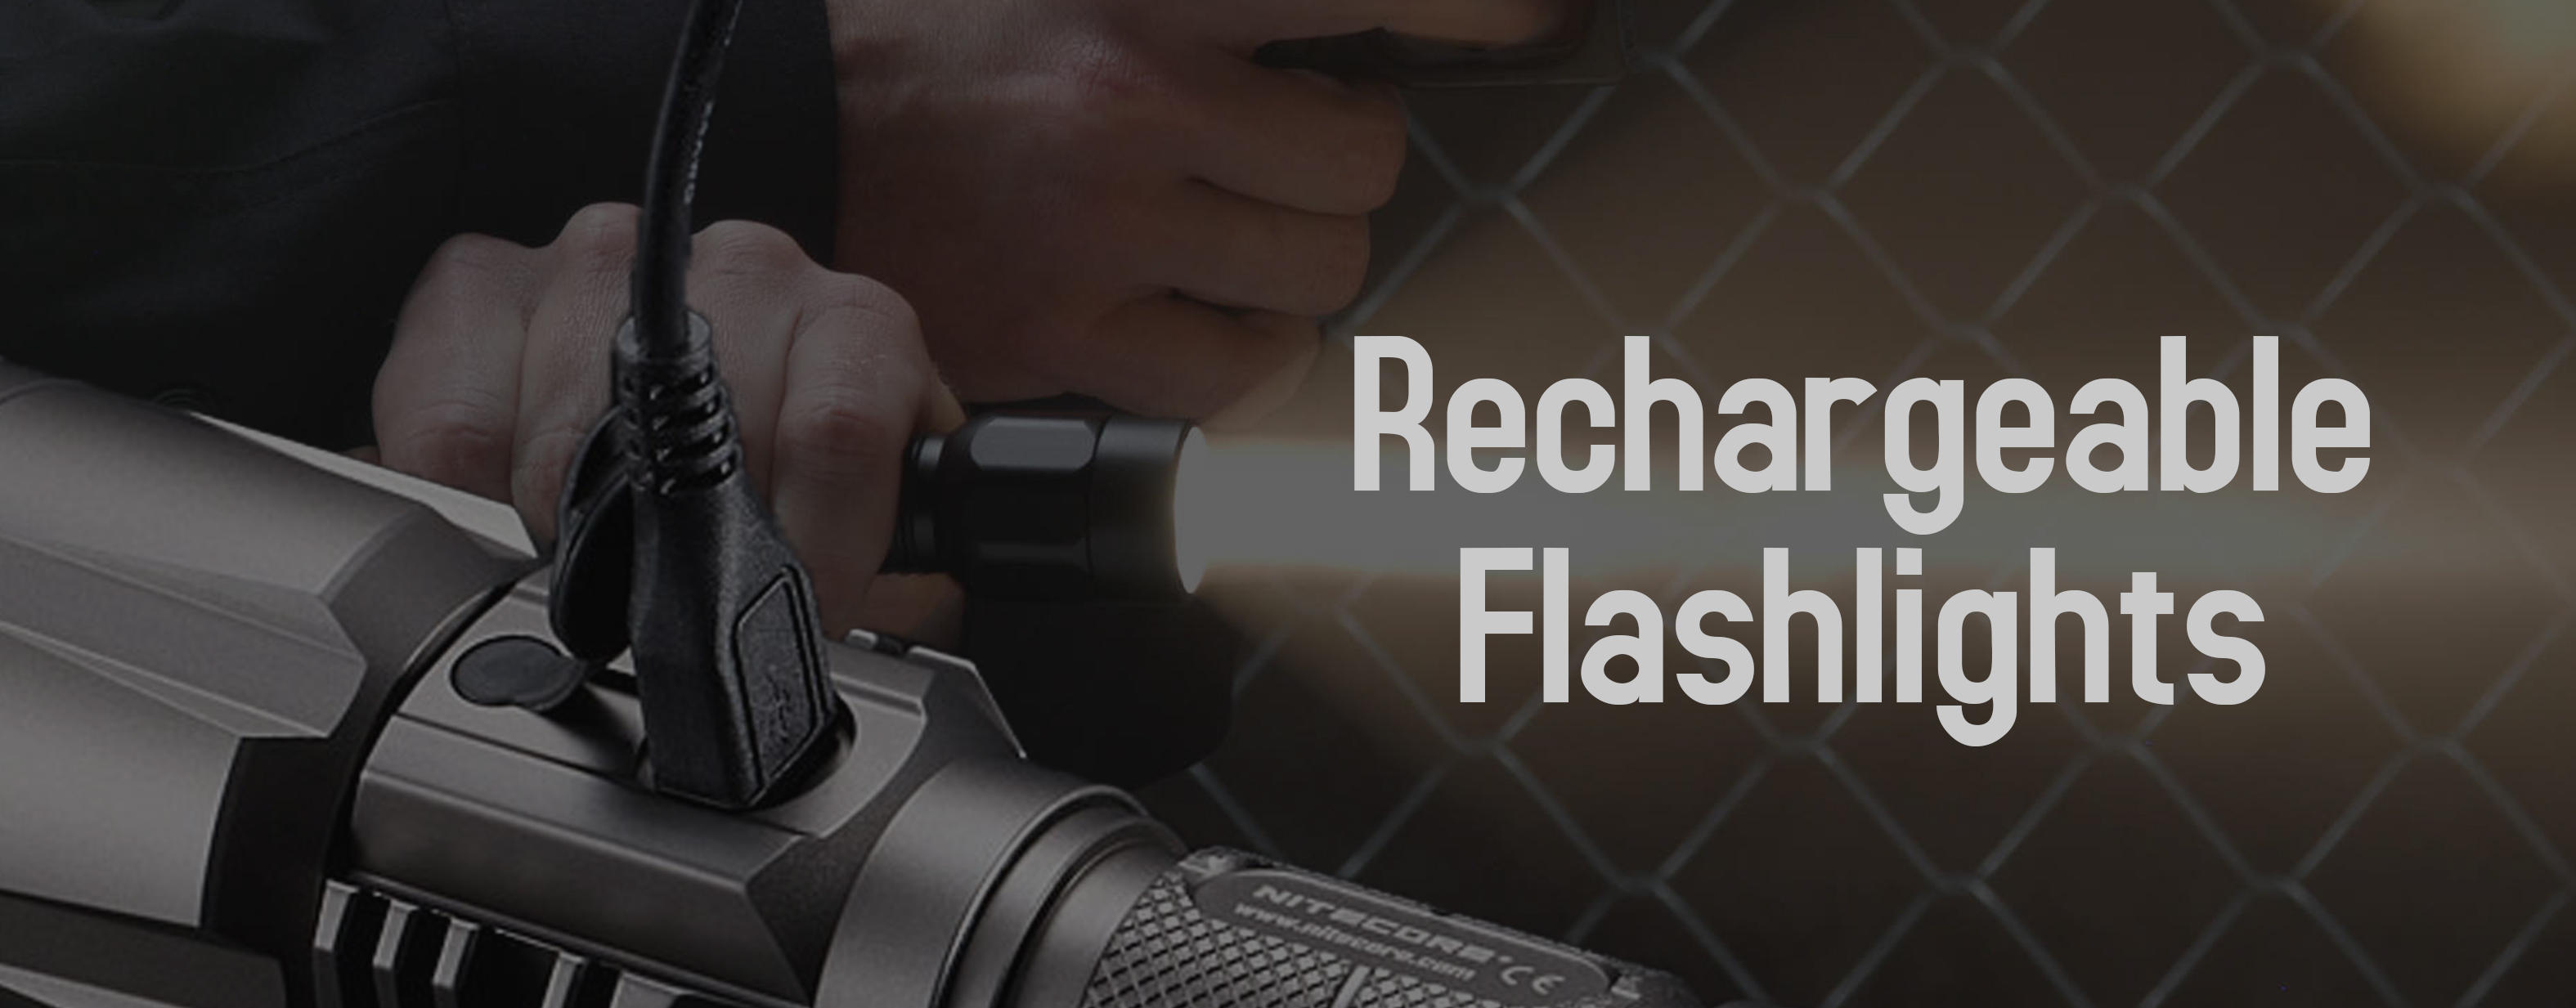 Rechargeable fFlashlights